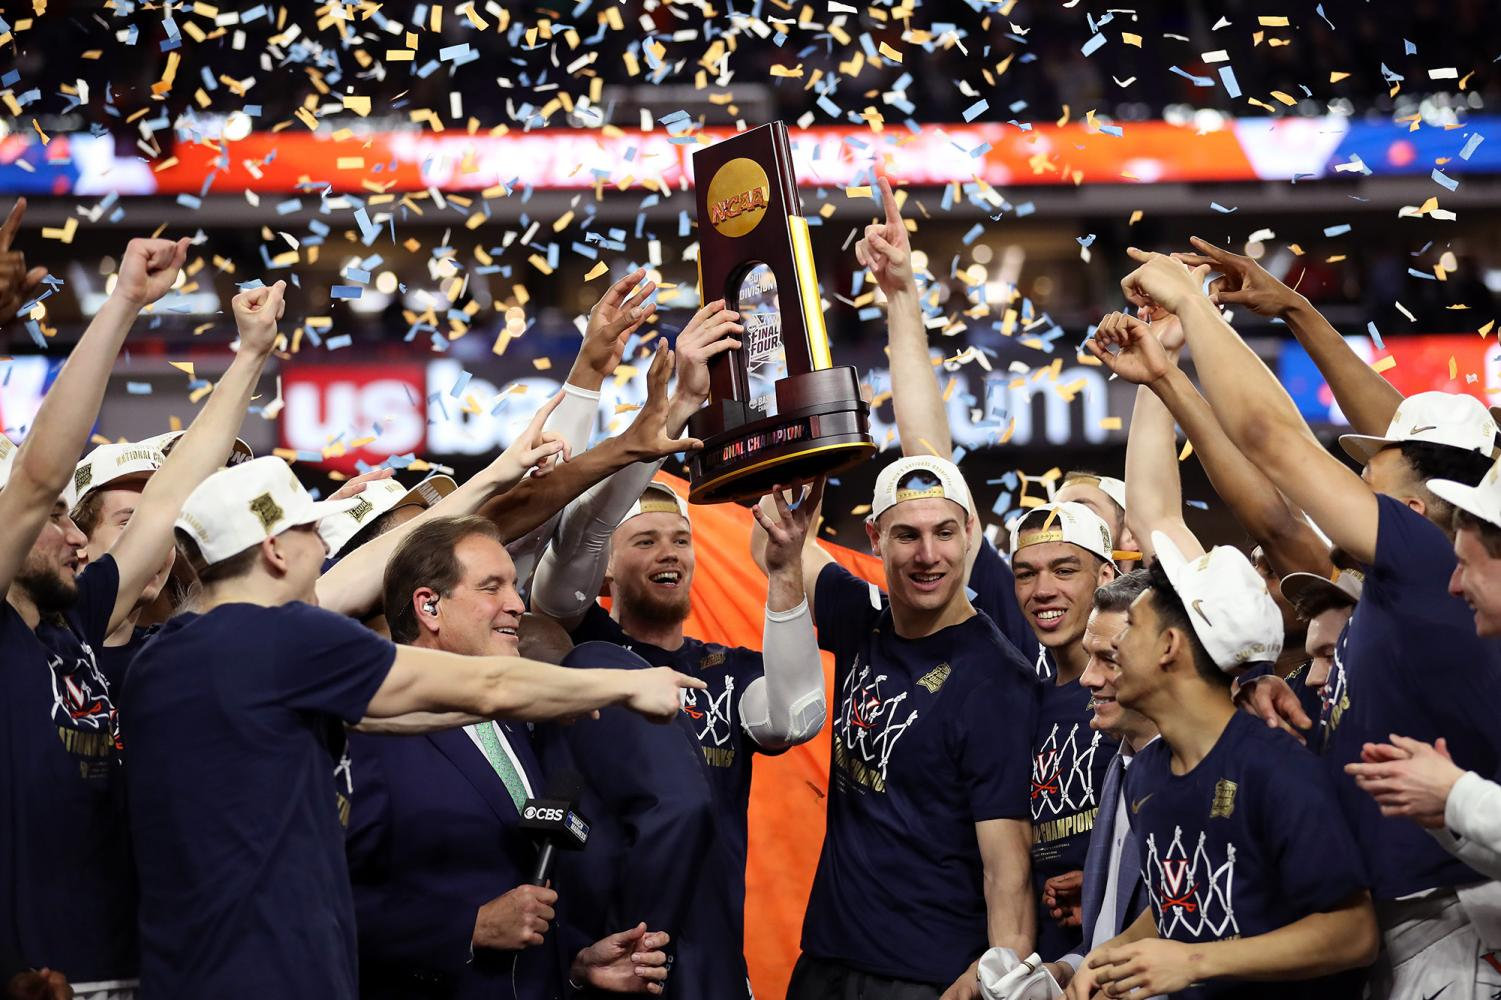 The Virginia Cavaliers celebrate with the trophy after their 85-77 win over the Texas Tech Red Raiders during the 2019 NCAA men's Final Four National Championship game at U.S. Bank Stadium on April 8, 2019 in Minneapolis, Minn.